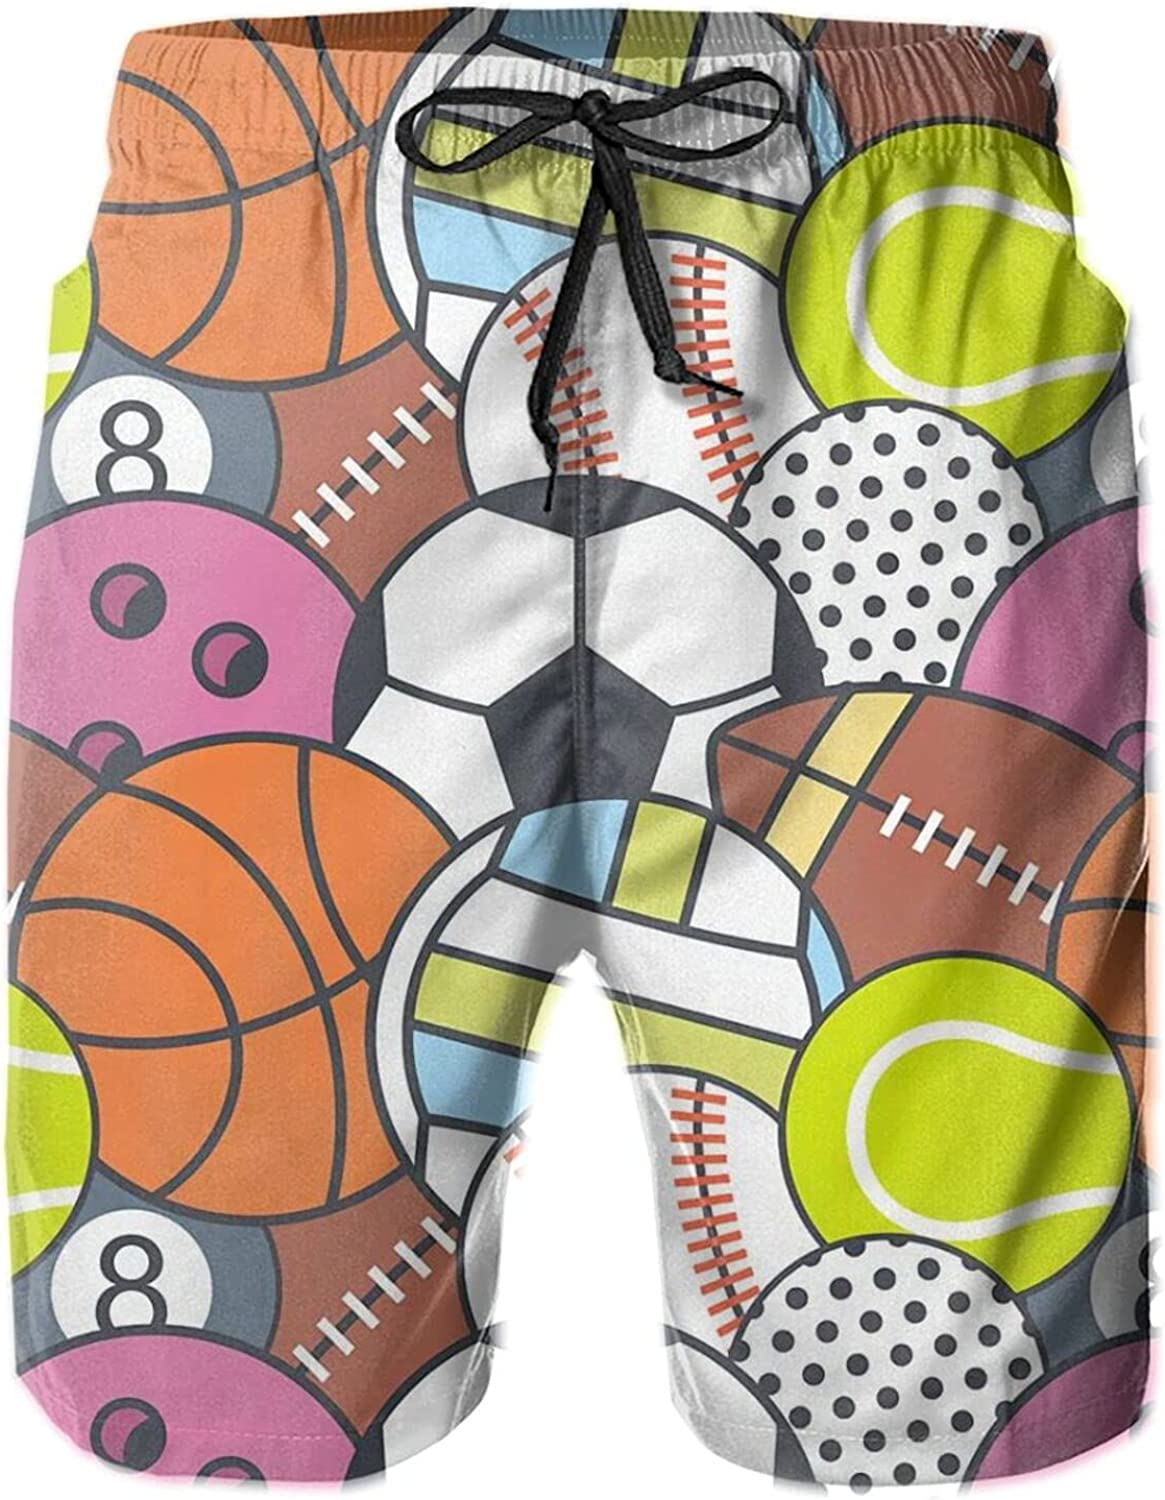 Men's Limited time cheap sale Year-end gift 100% Polyester Ball Games Swimsuit Fashion Beachwear 3